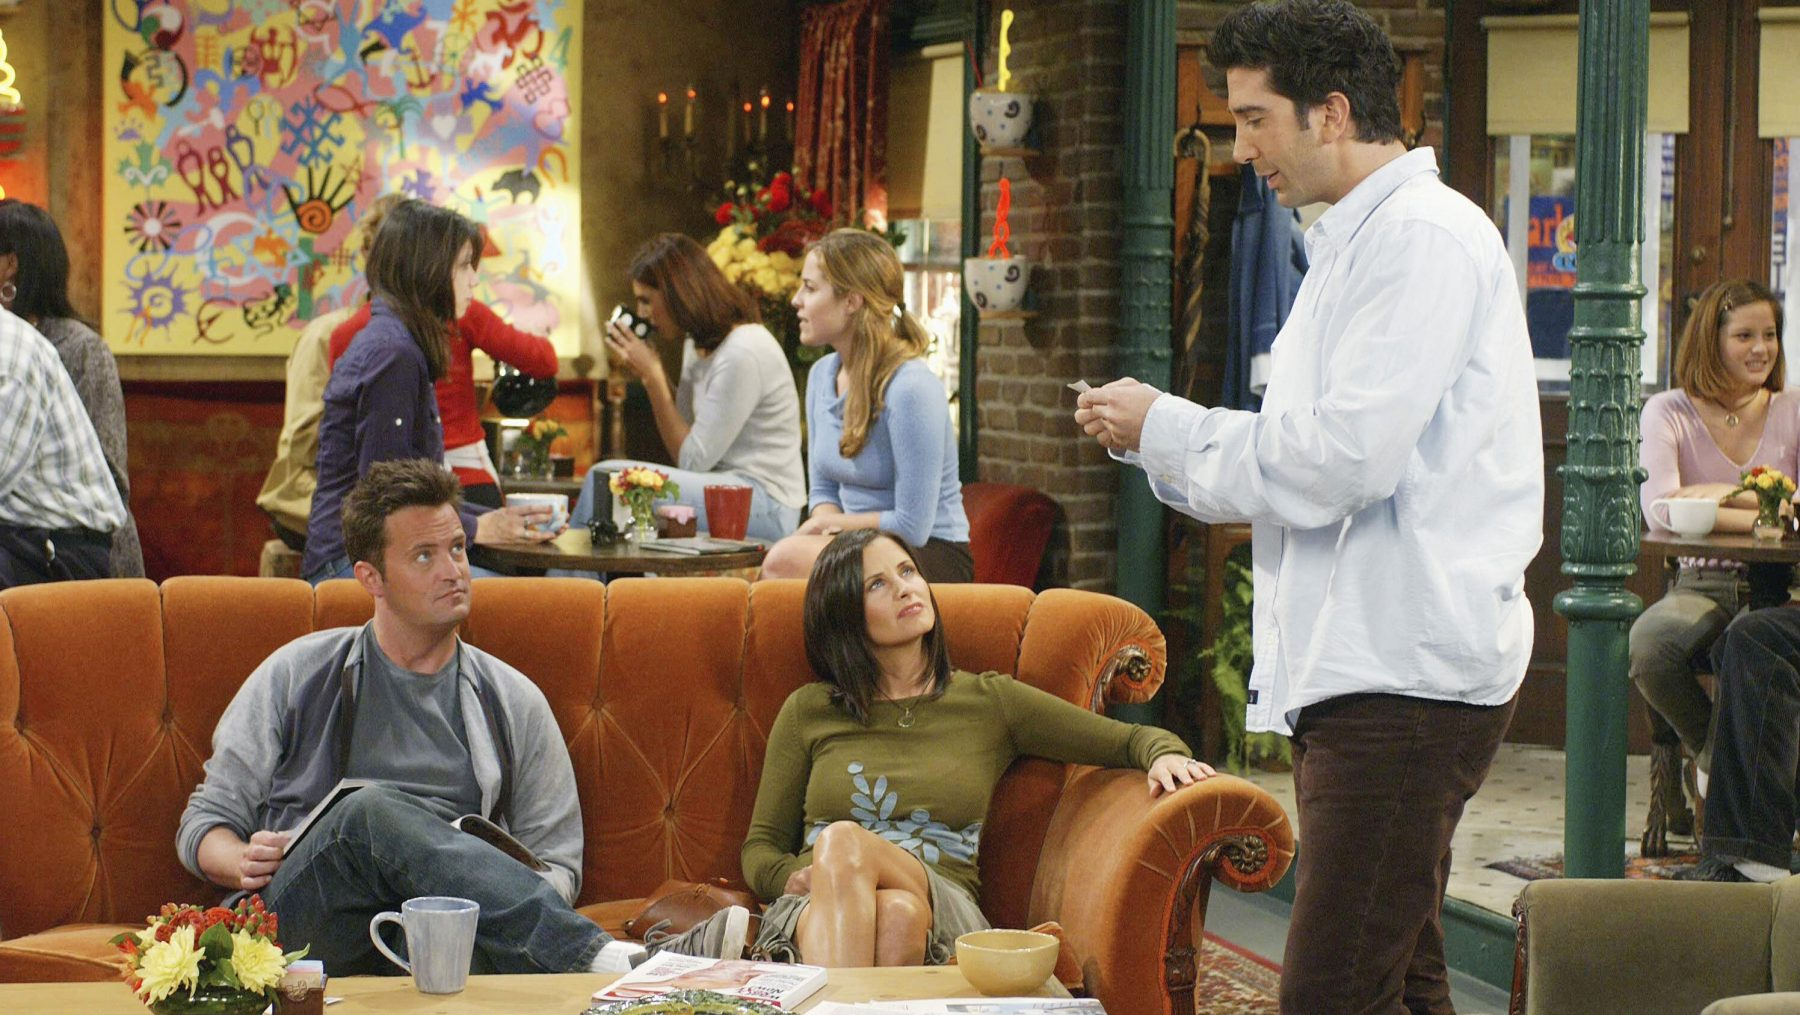 Engelse Sofa Koffie Drinken In Café Central Perk Uit Friends? In